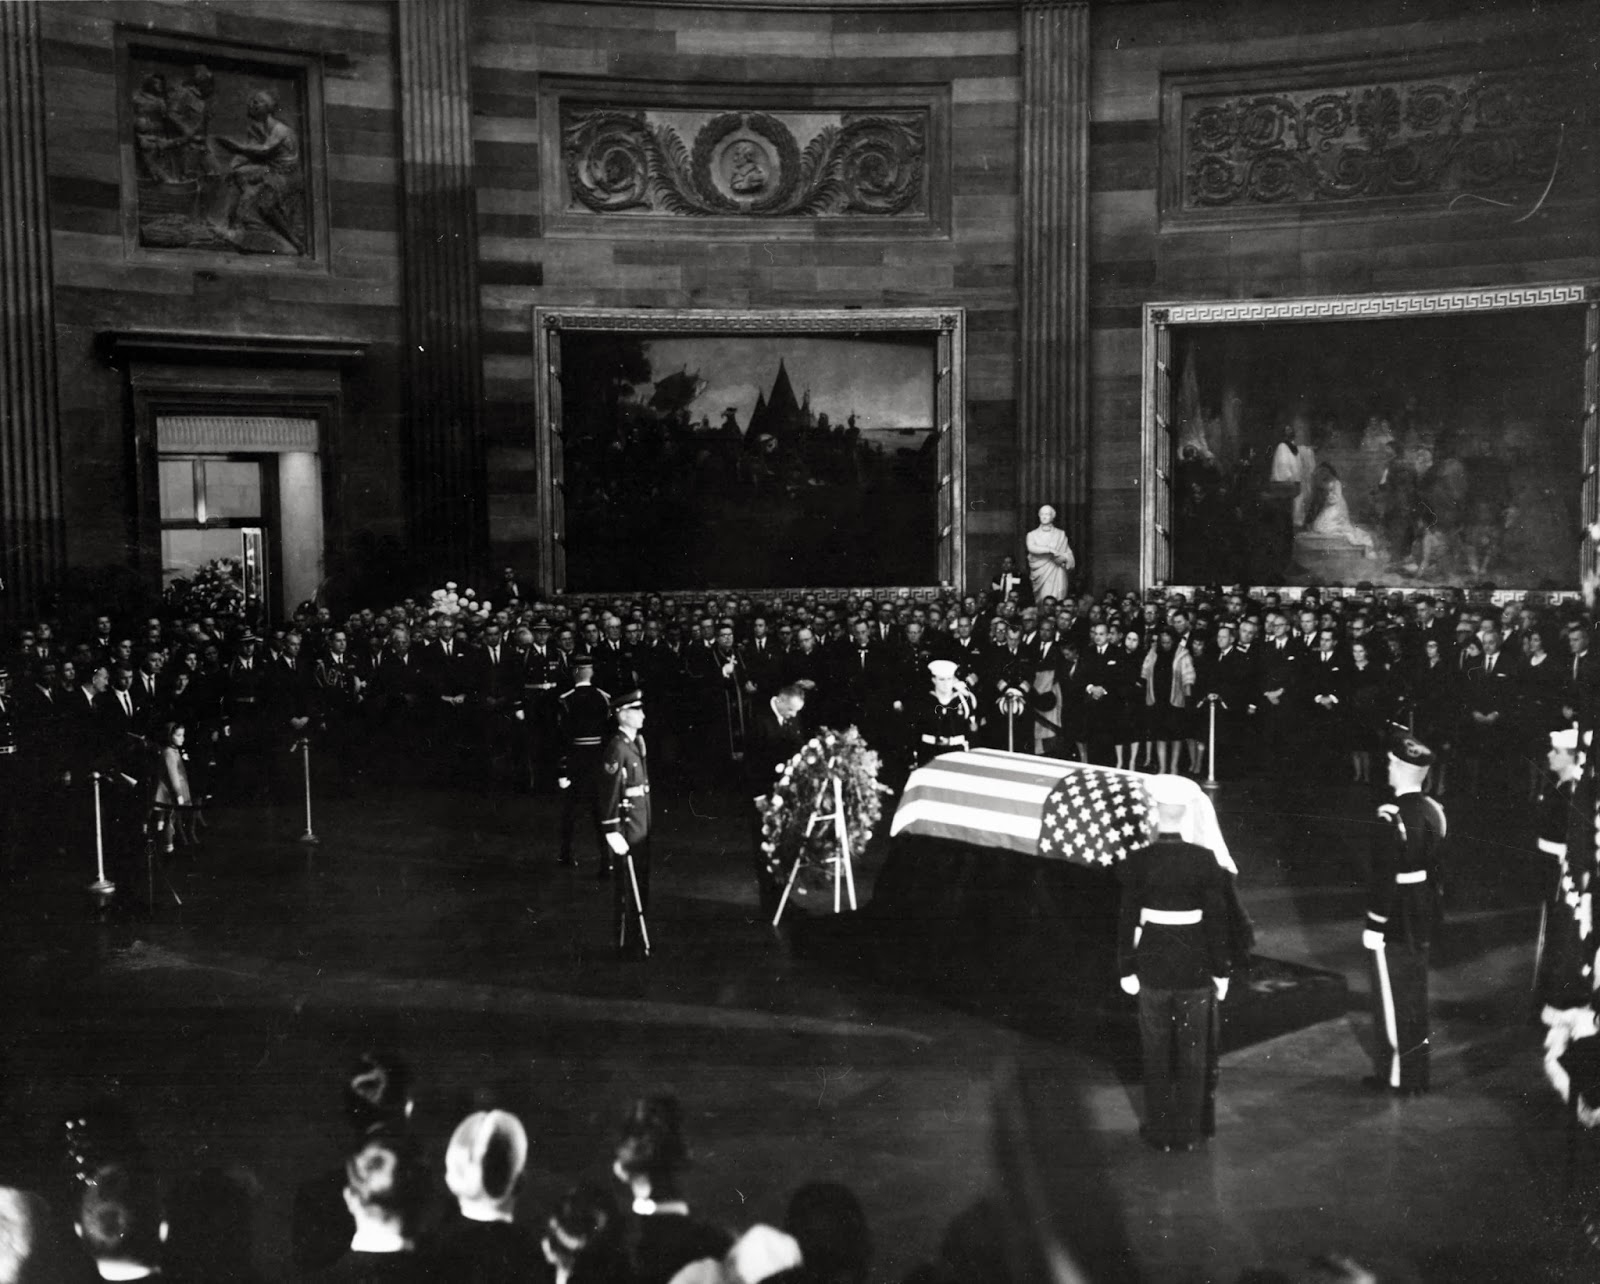 President Lyndon B. Johnson placing a wreath before the flag-draped casket of President Kennedy.